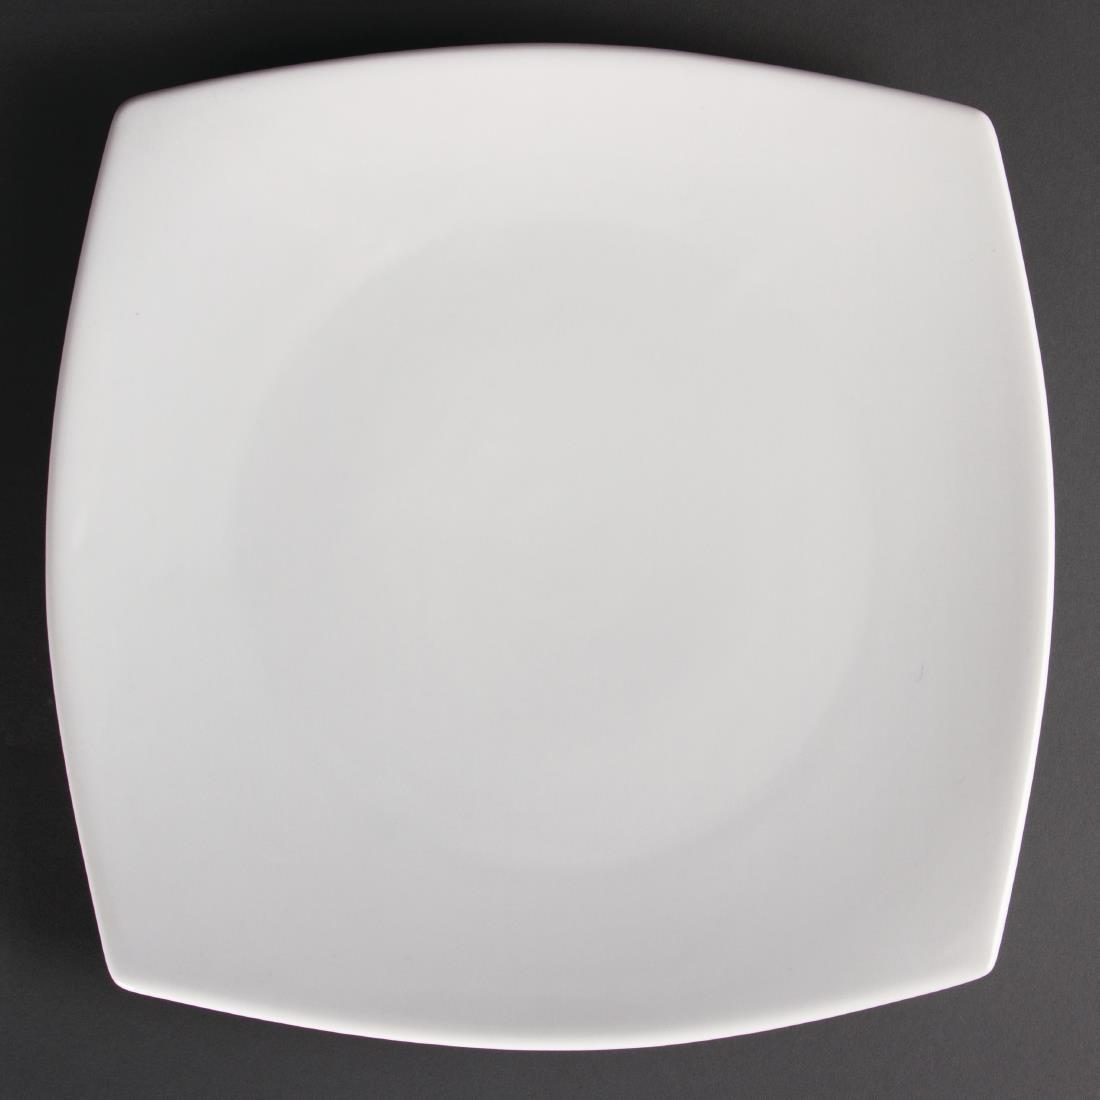 Olympia Whiteware Rounded Square Plates 305mm